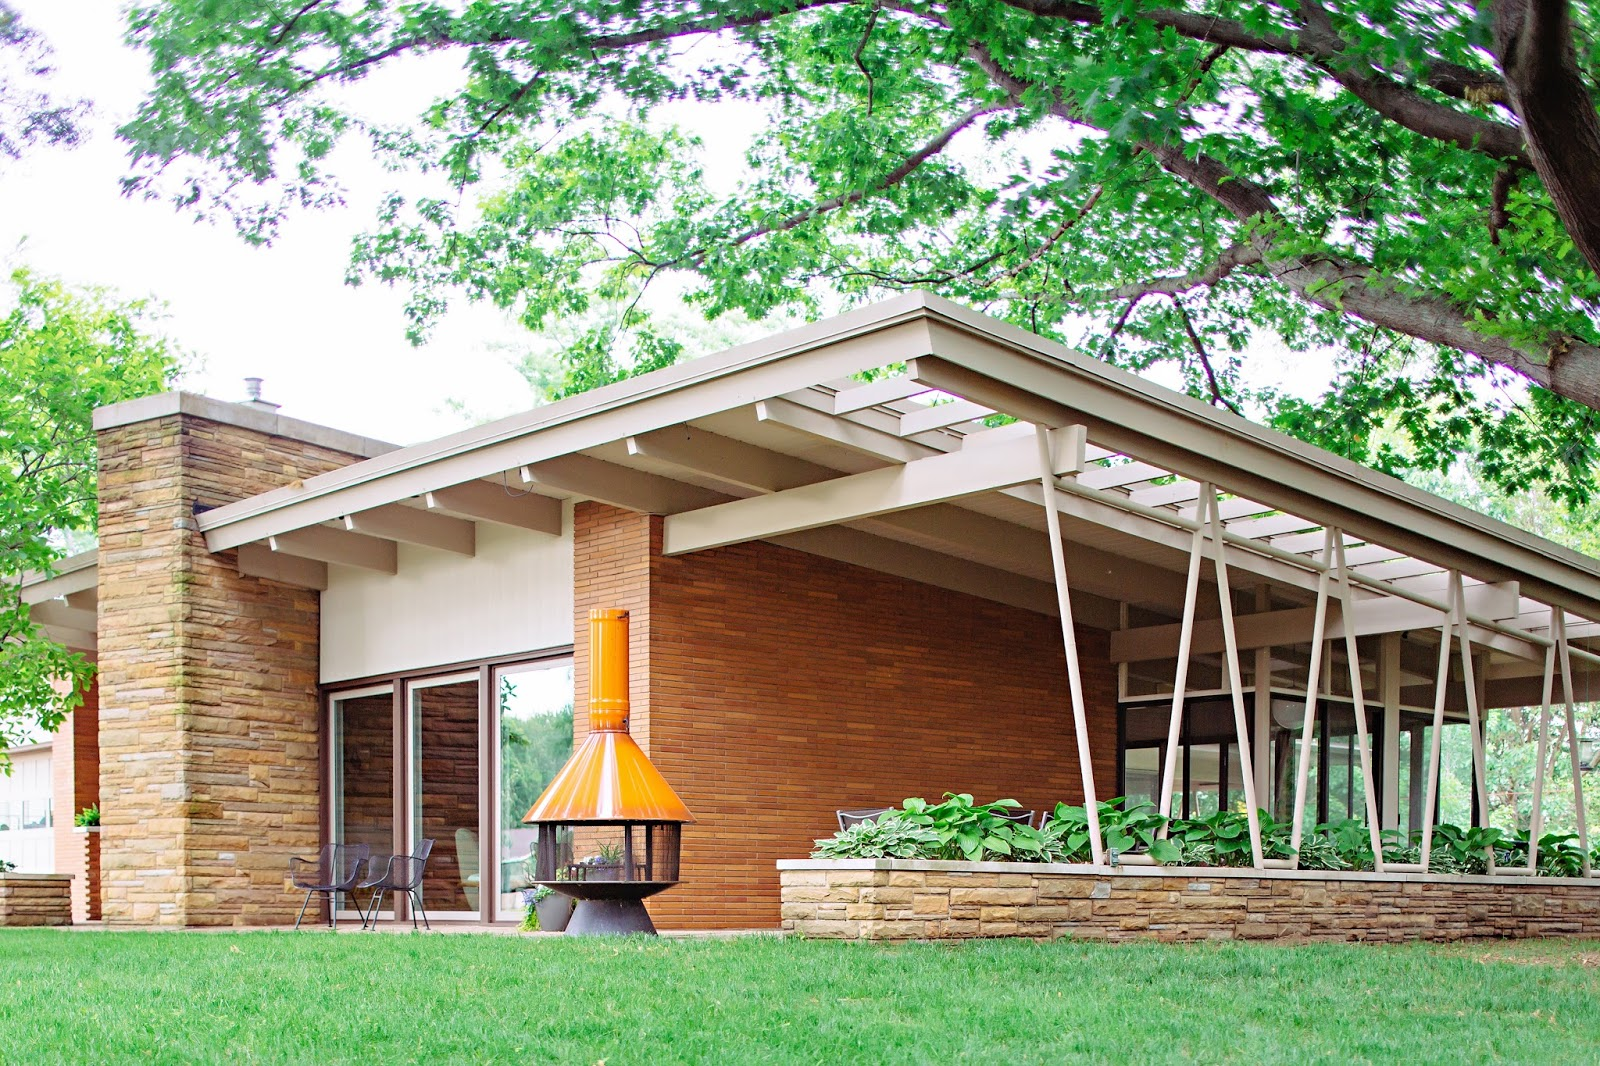 MidModMich - mid-century living in Michigan